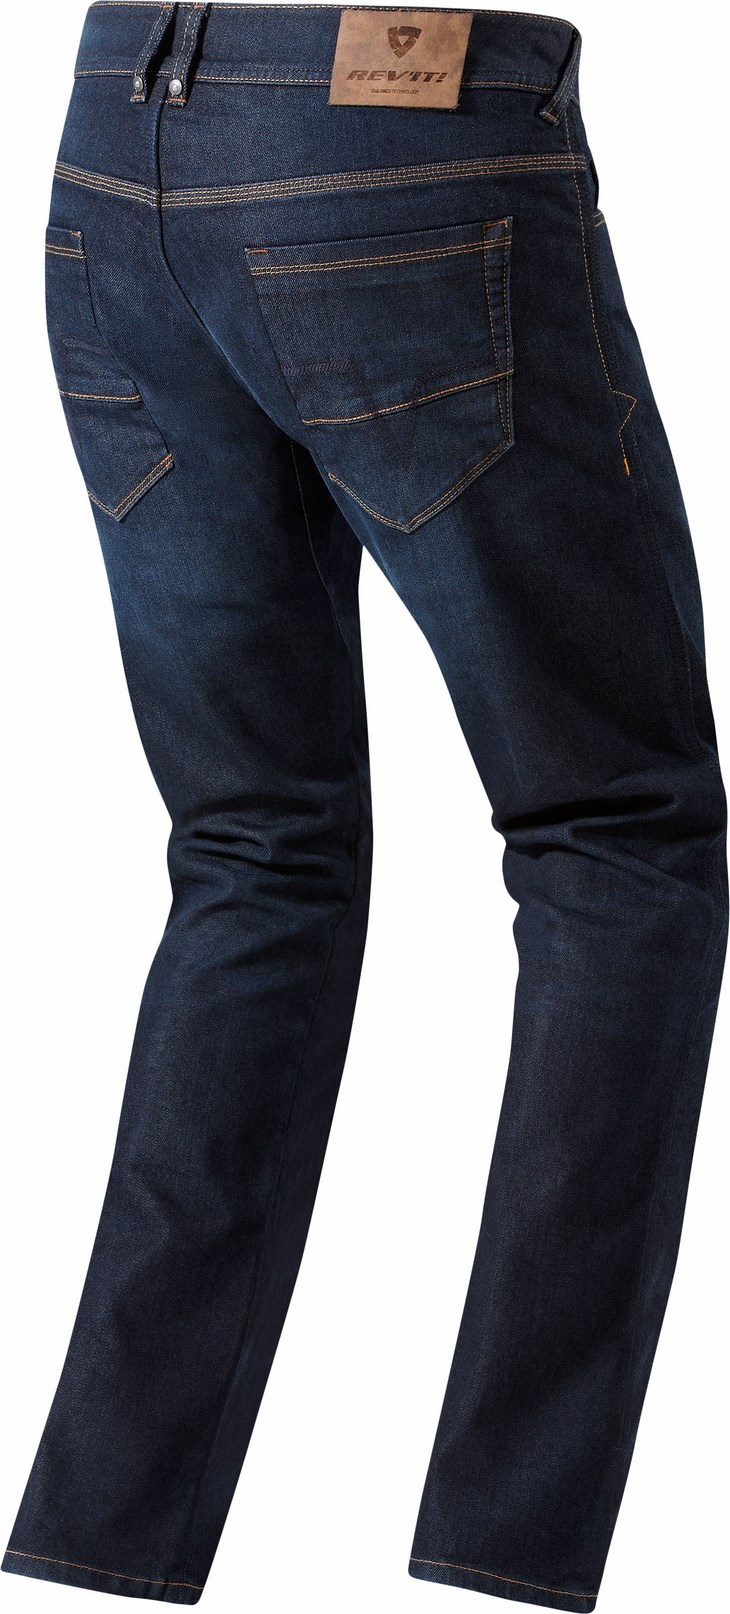 Jeans moto Rev'it Philly Blu scuro Accorciato